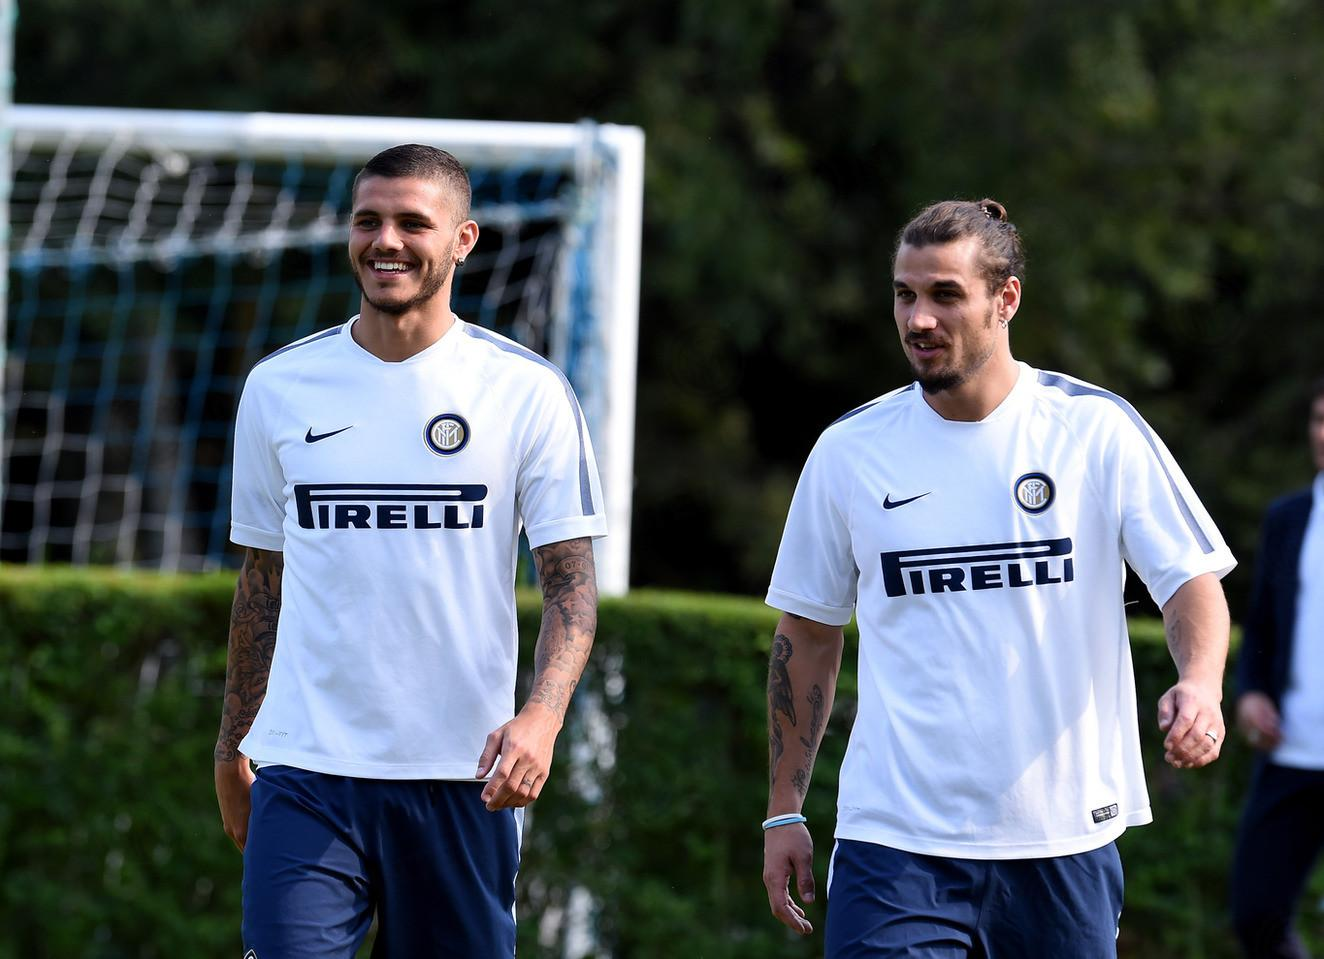 Icardi-Osvaldo duo against PAOK